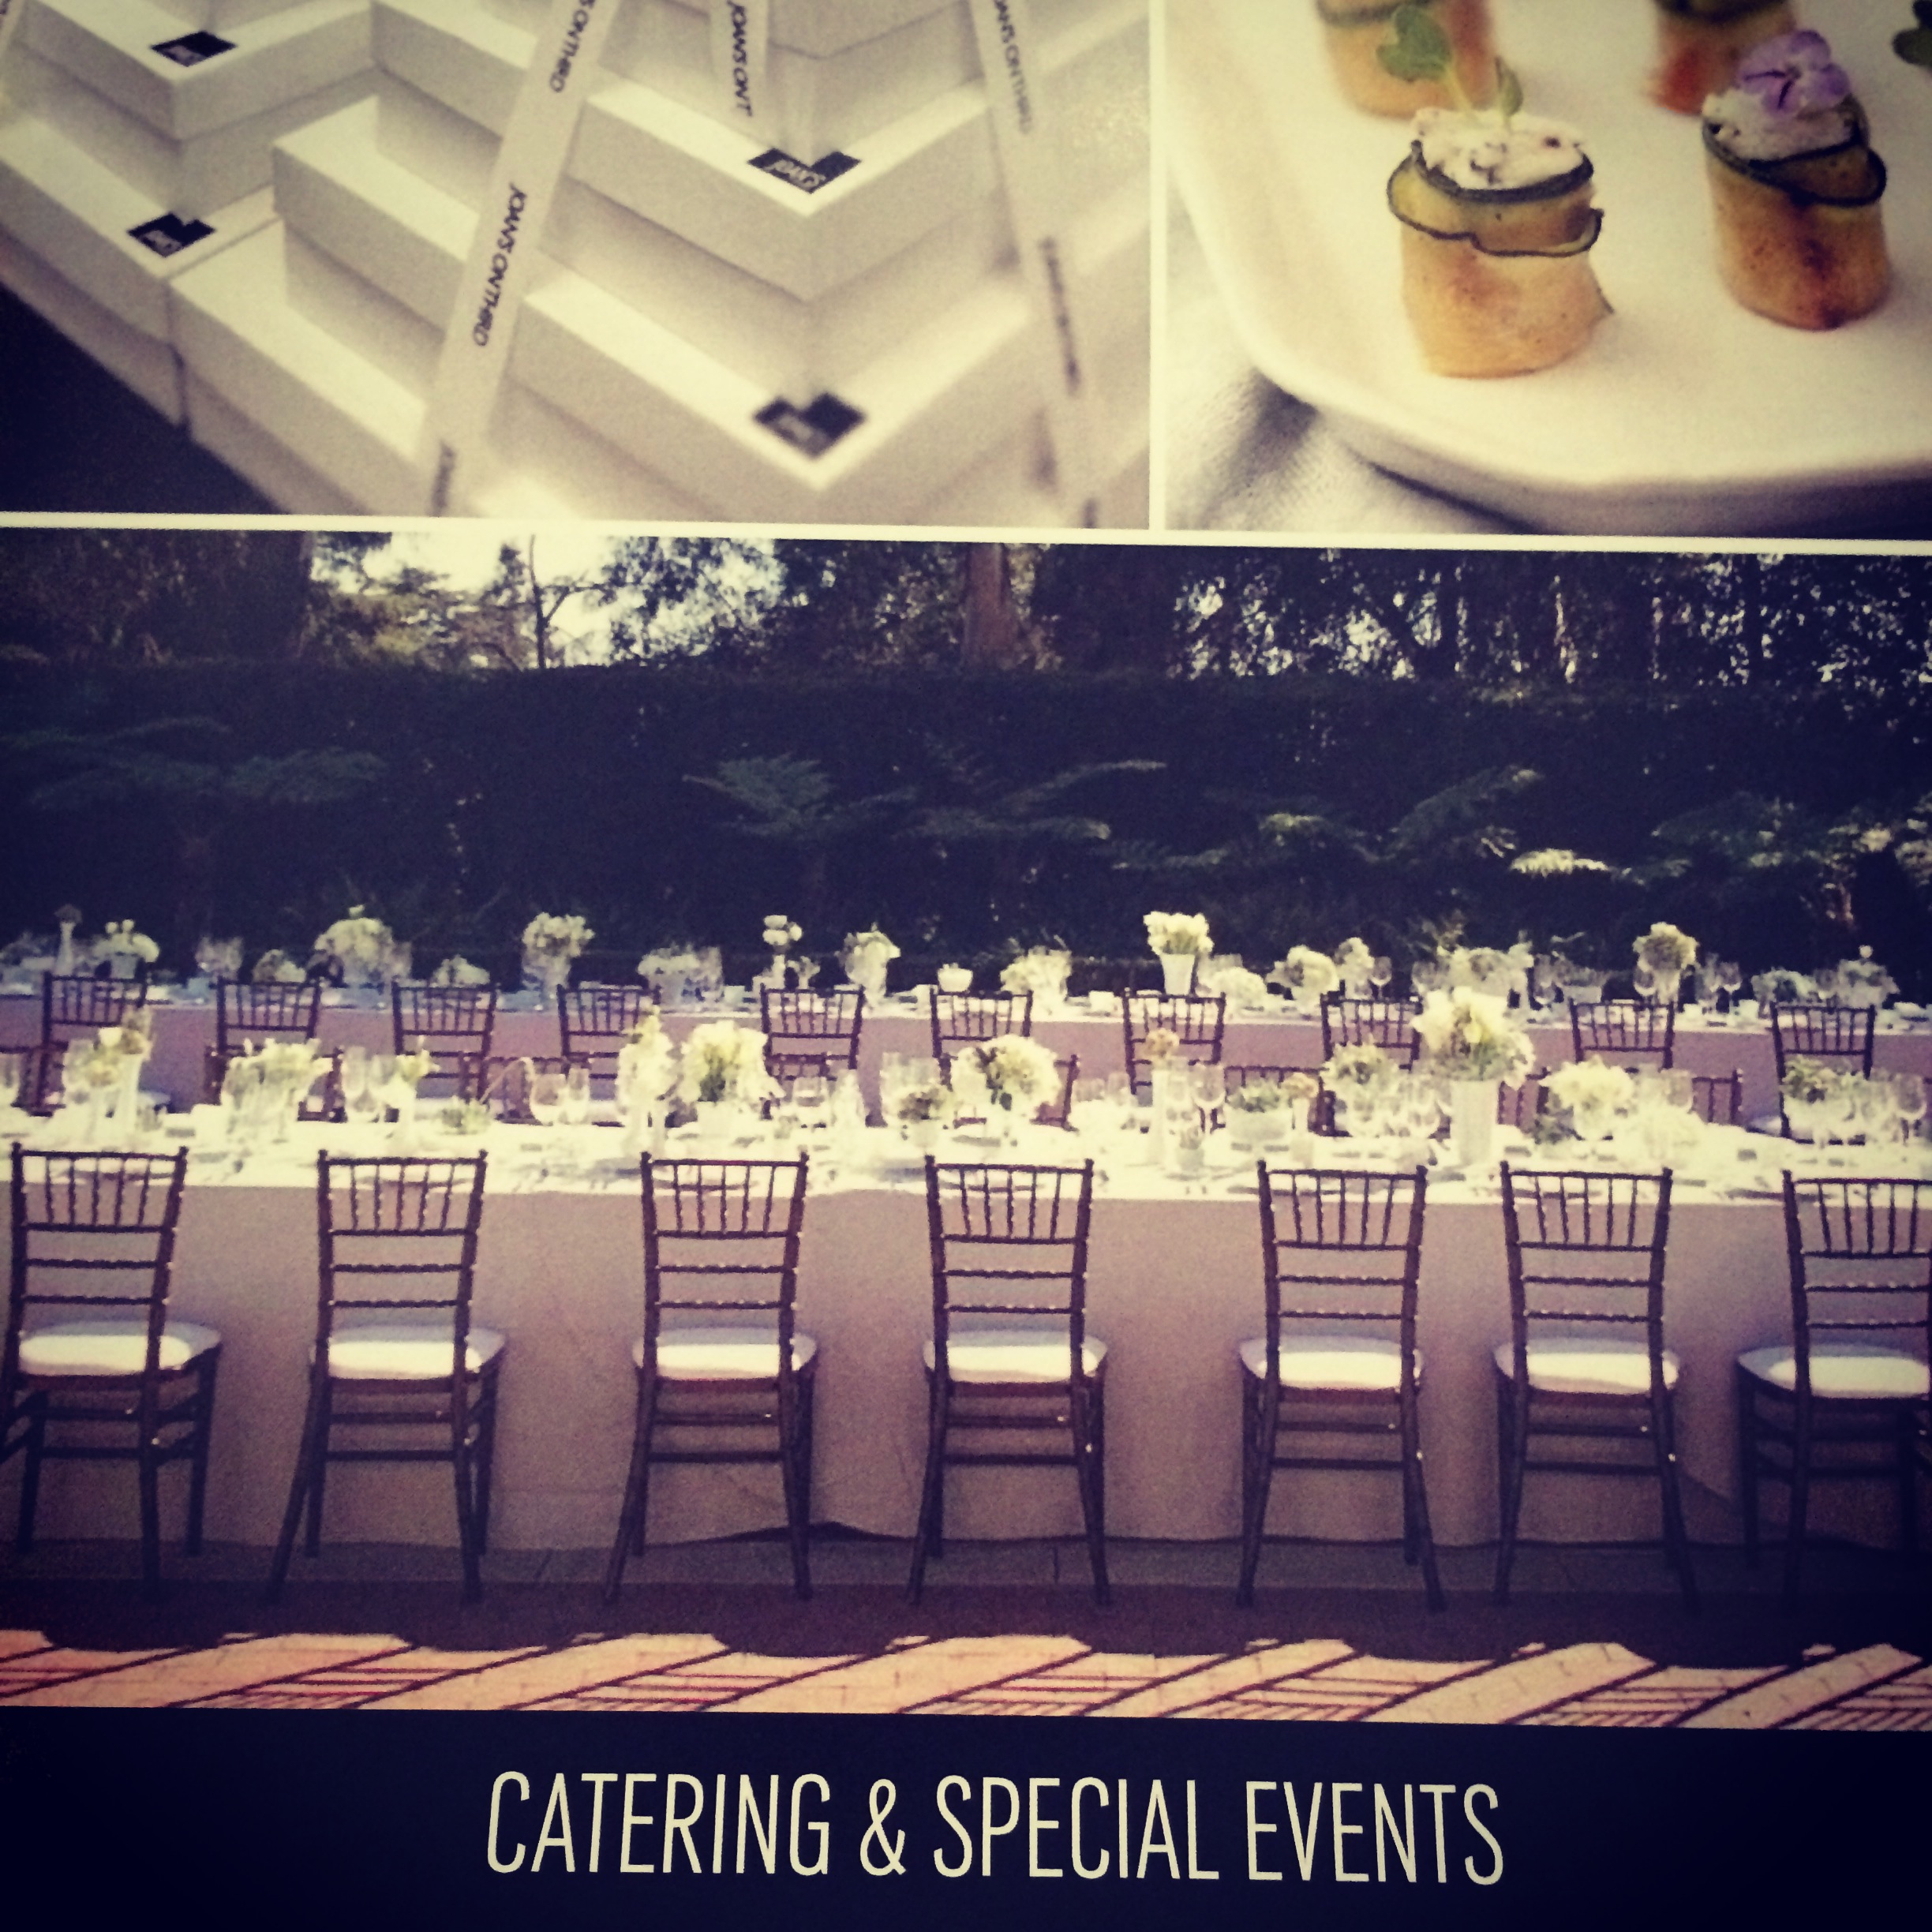 California Couples often tap their favorite neighborhood hang outs, such as Joan's on 3rd, for catering their weddings. Actually, a little known fact is that Joan's actually started out as a catering company before expanding into the mecca it is today!